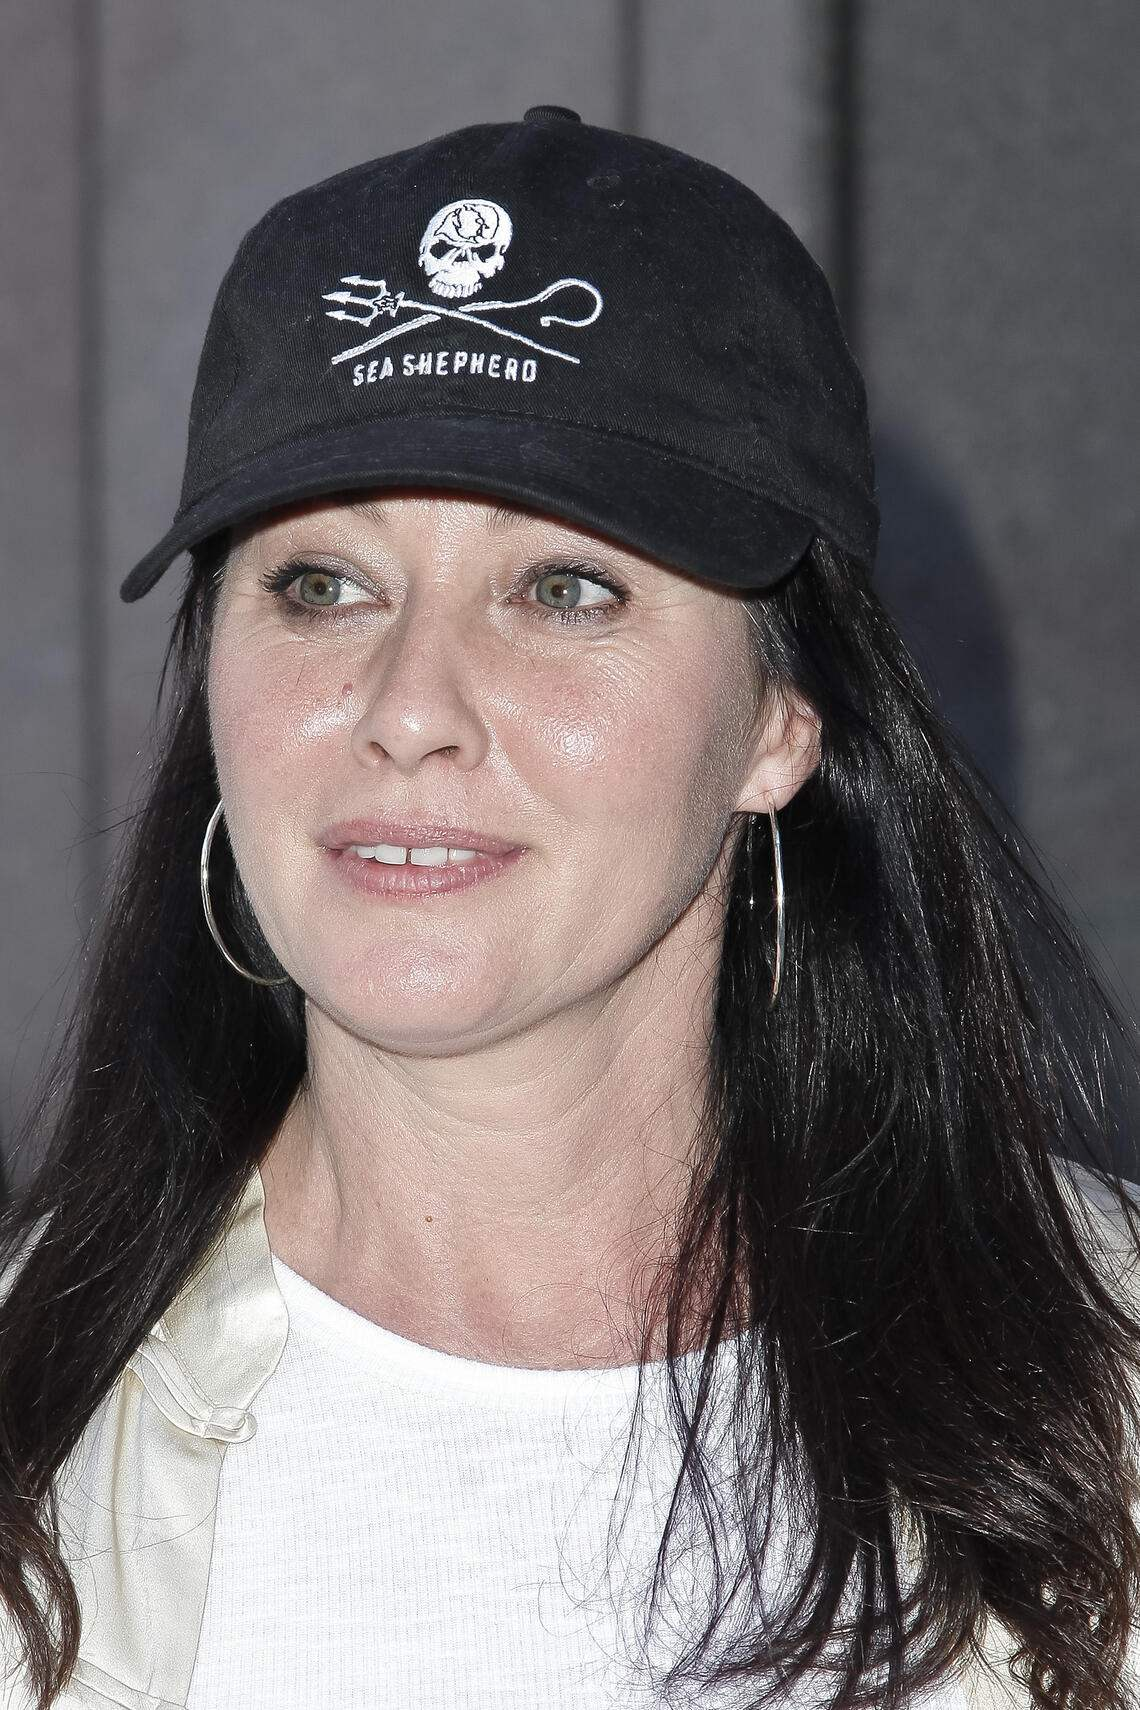 Shannen Doherty heute 2015 Brustkrebs Instagram